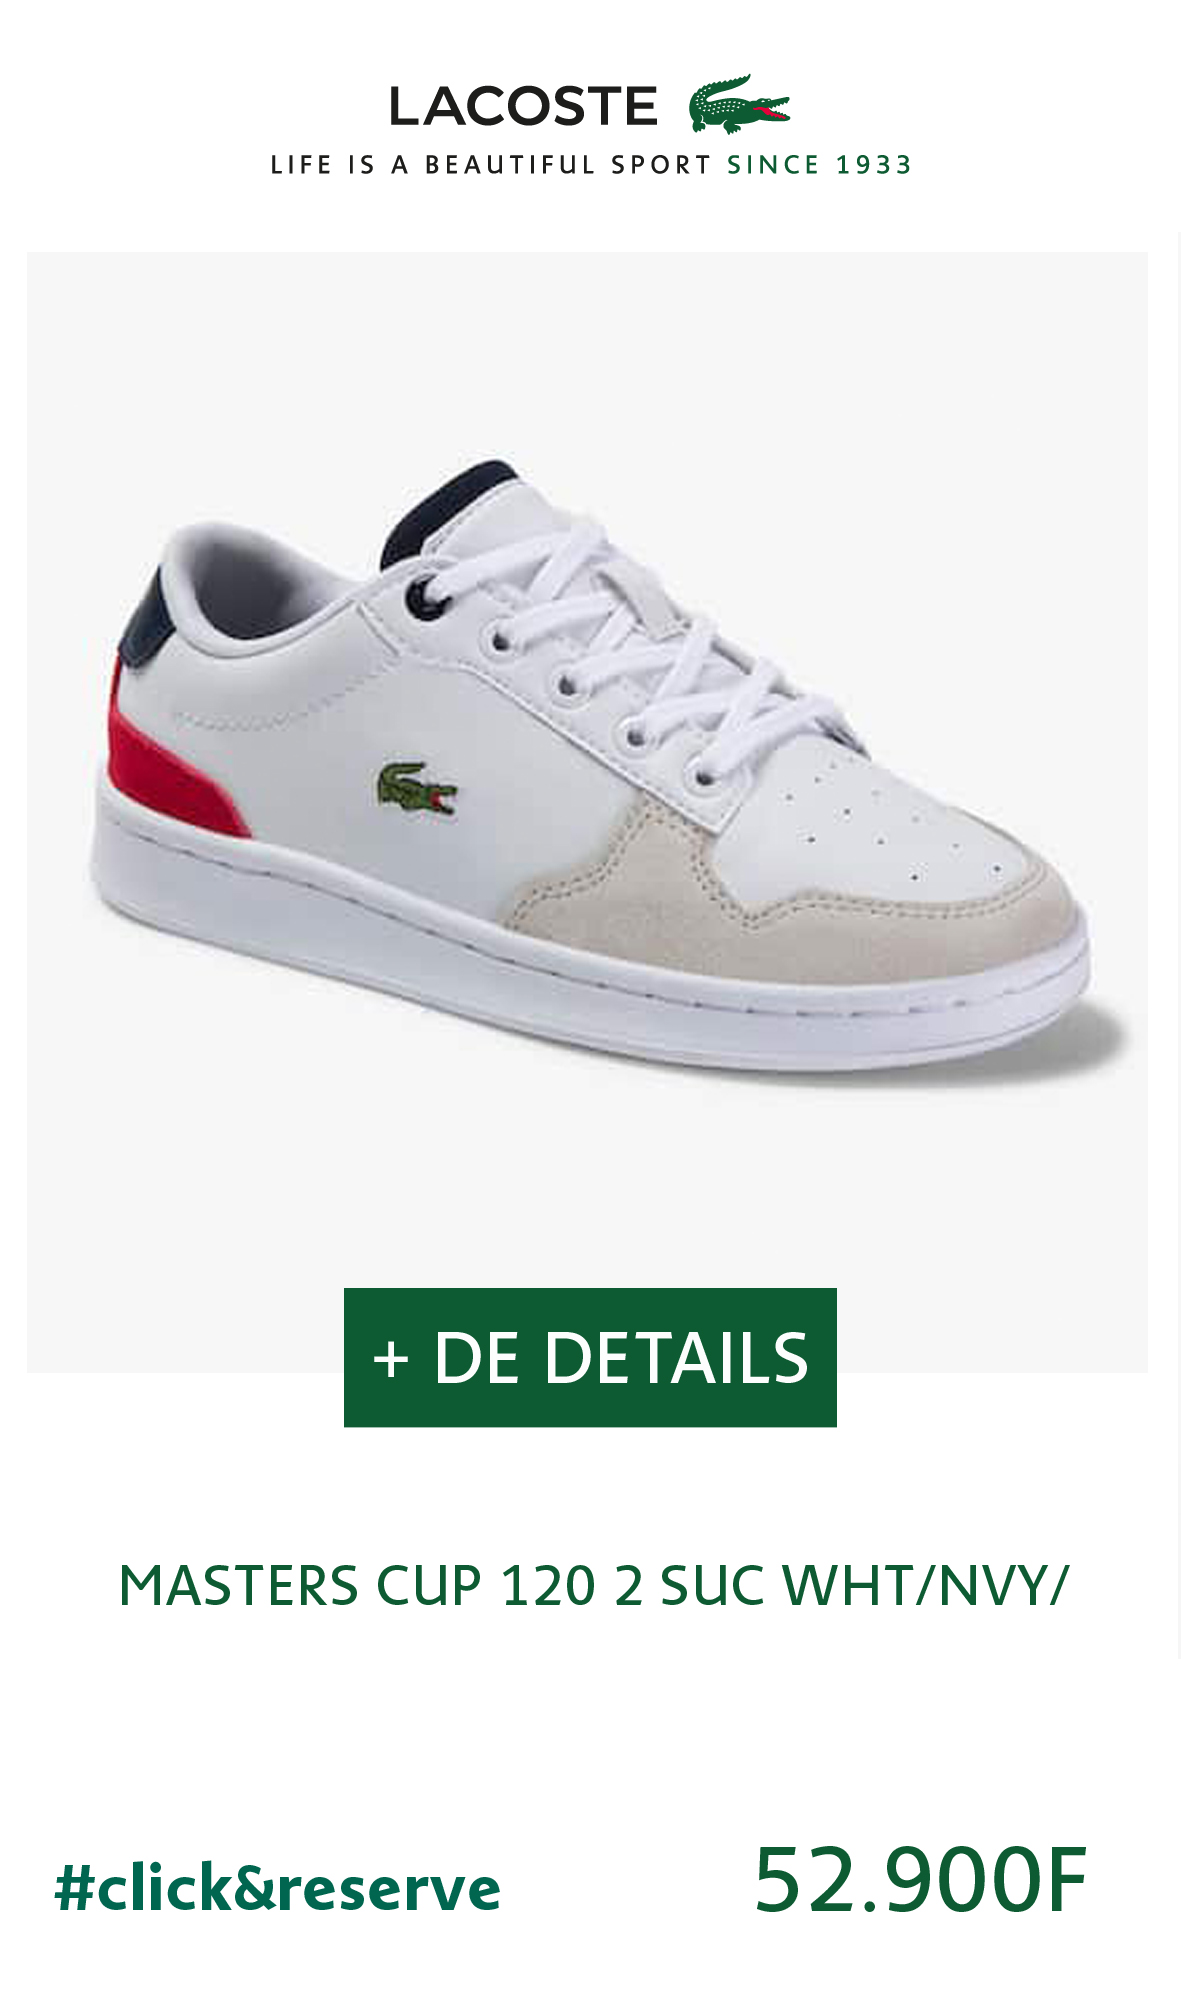 Chaussure enfant MASTERS CUP 120 2 SUC – Blanc/ marine/ rouge